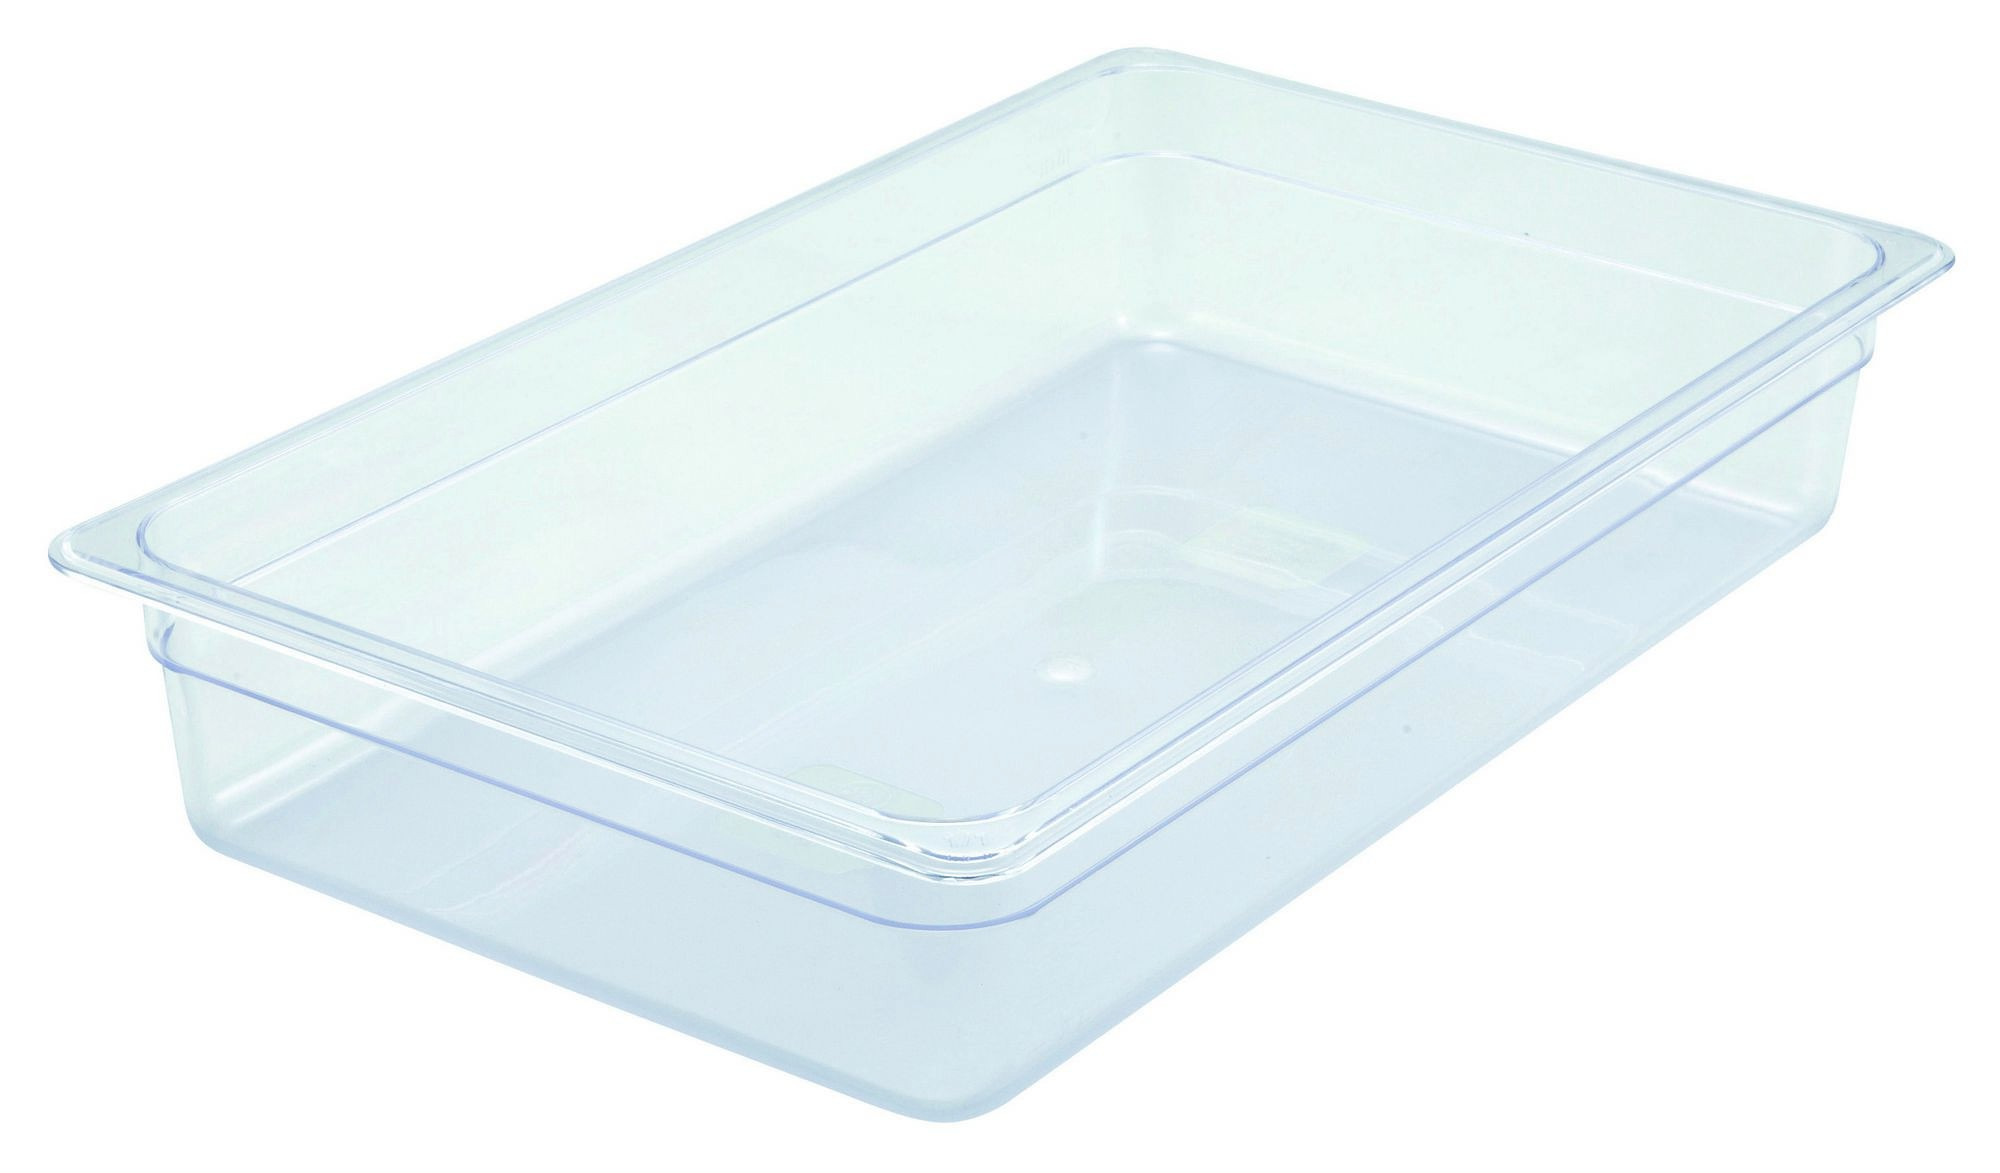 Polycarbonate NSF Full-Size Food Pan - 4 Deep